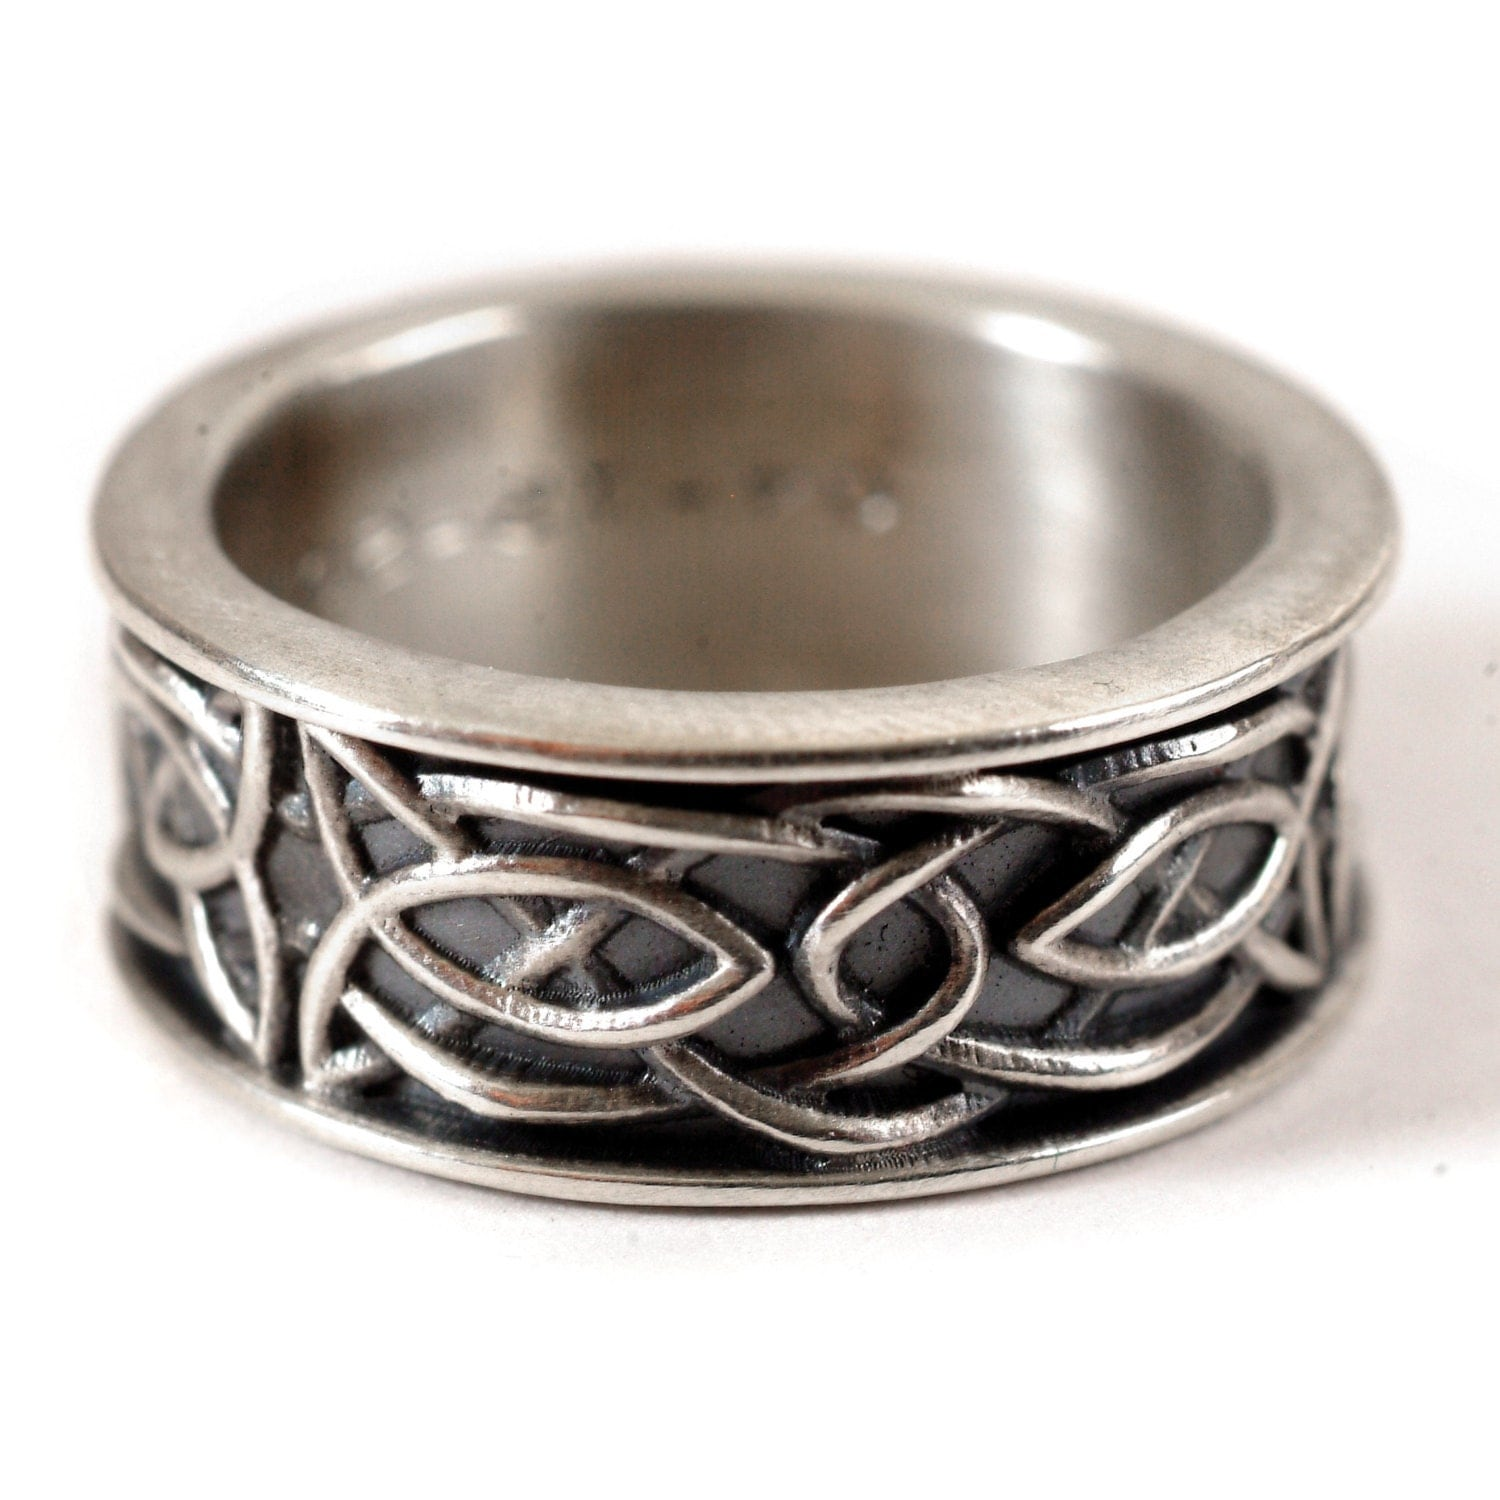 celtic wedding ring recycled silver ring 925 sterling silver